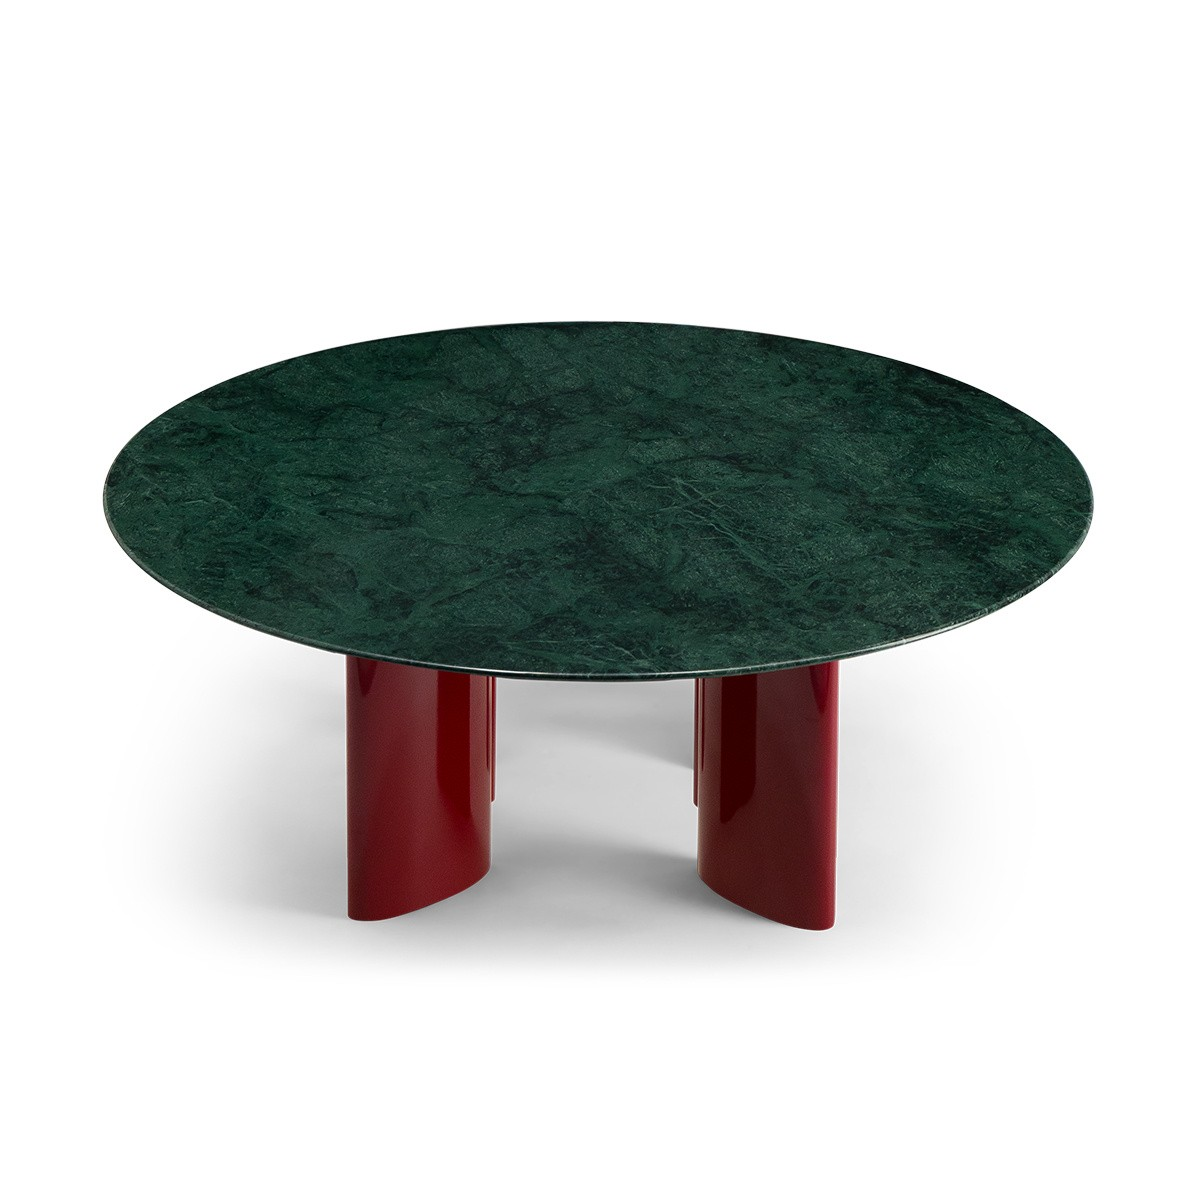 Carlotta Coffee Table, Green Marble Top and Red Legs